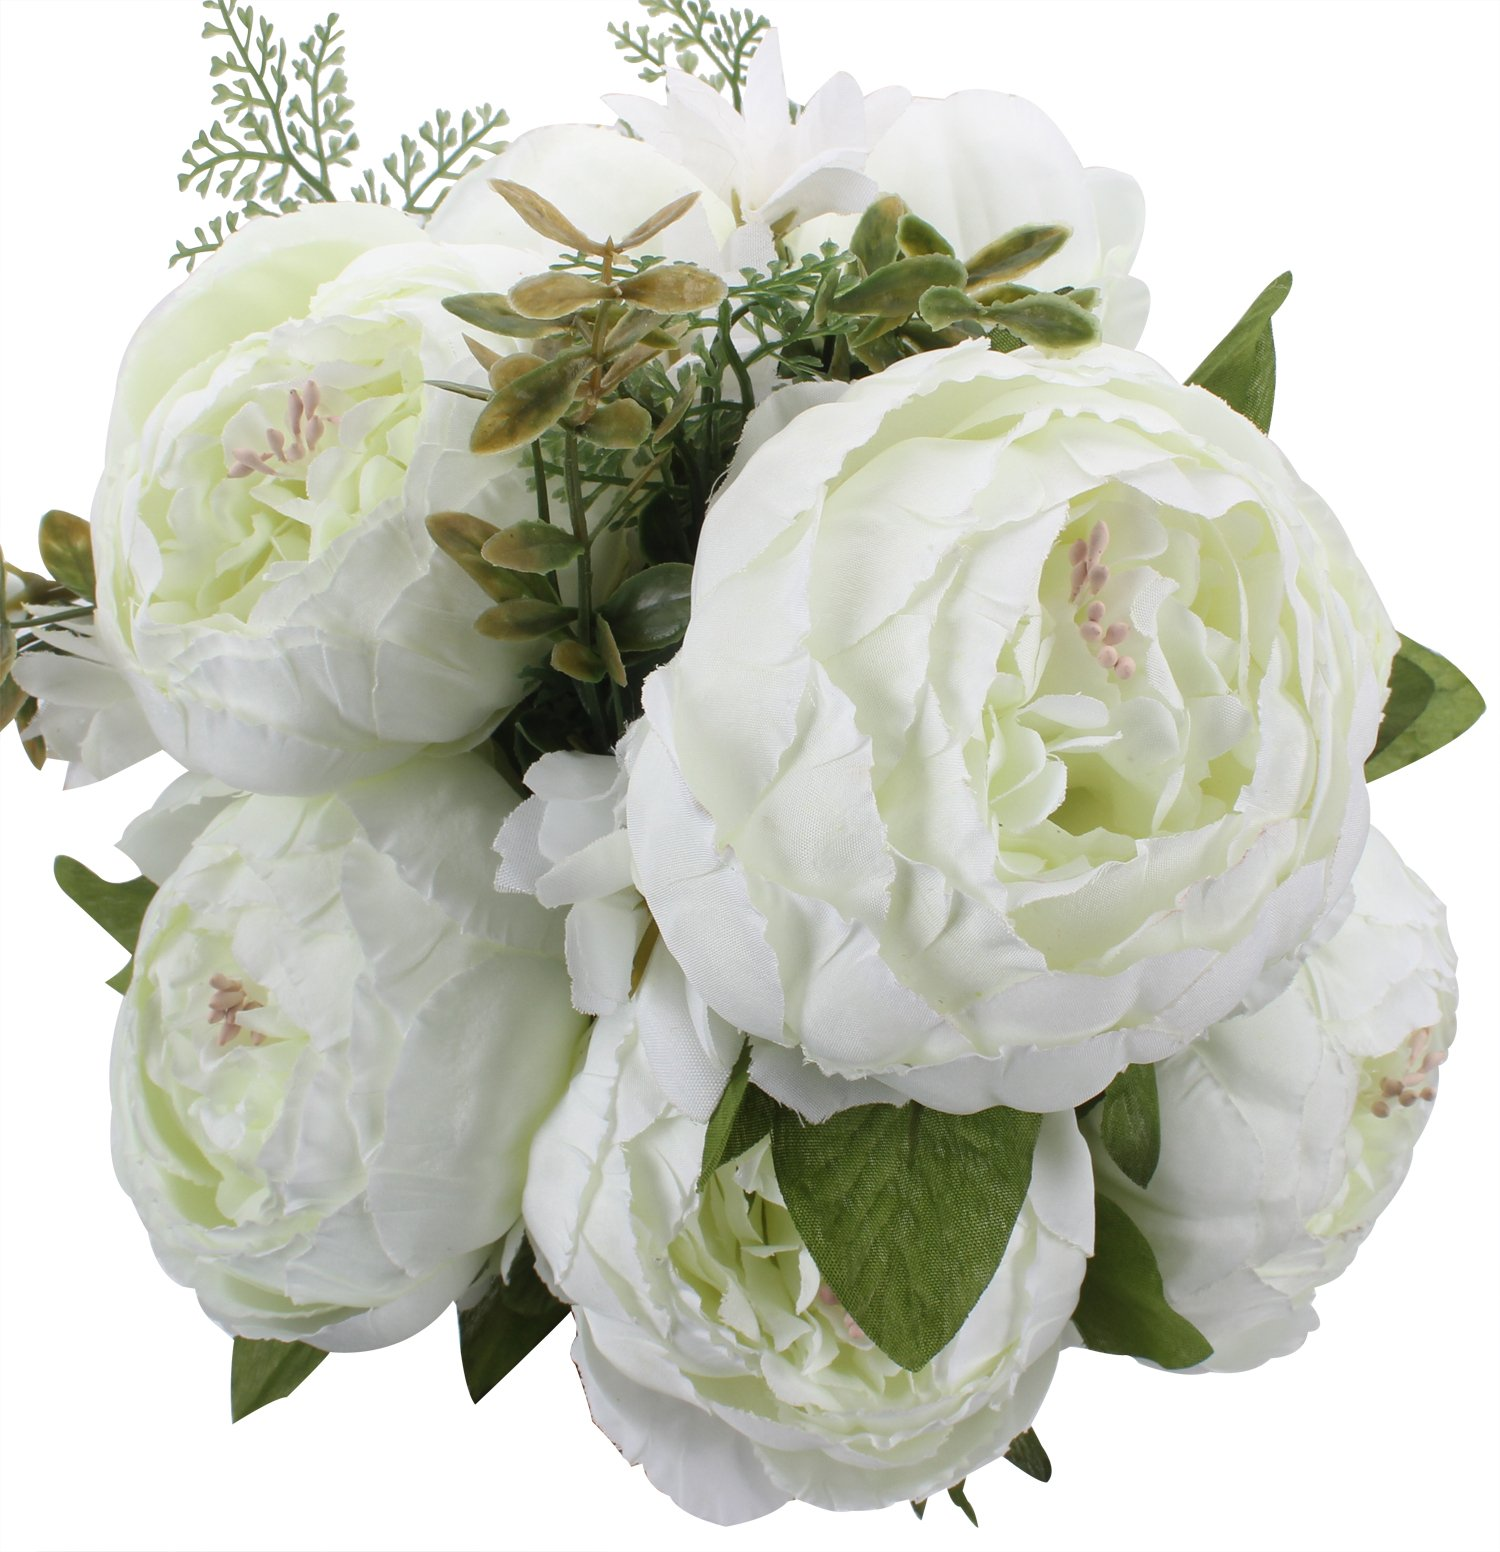 silk flower arrangements duovlo springs flowers artificial silk peony bouquets wedding home decoration,pack of 1 (spring white)